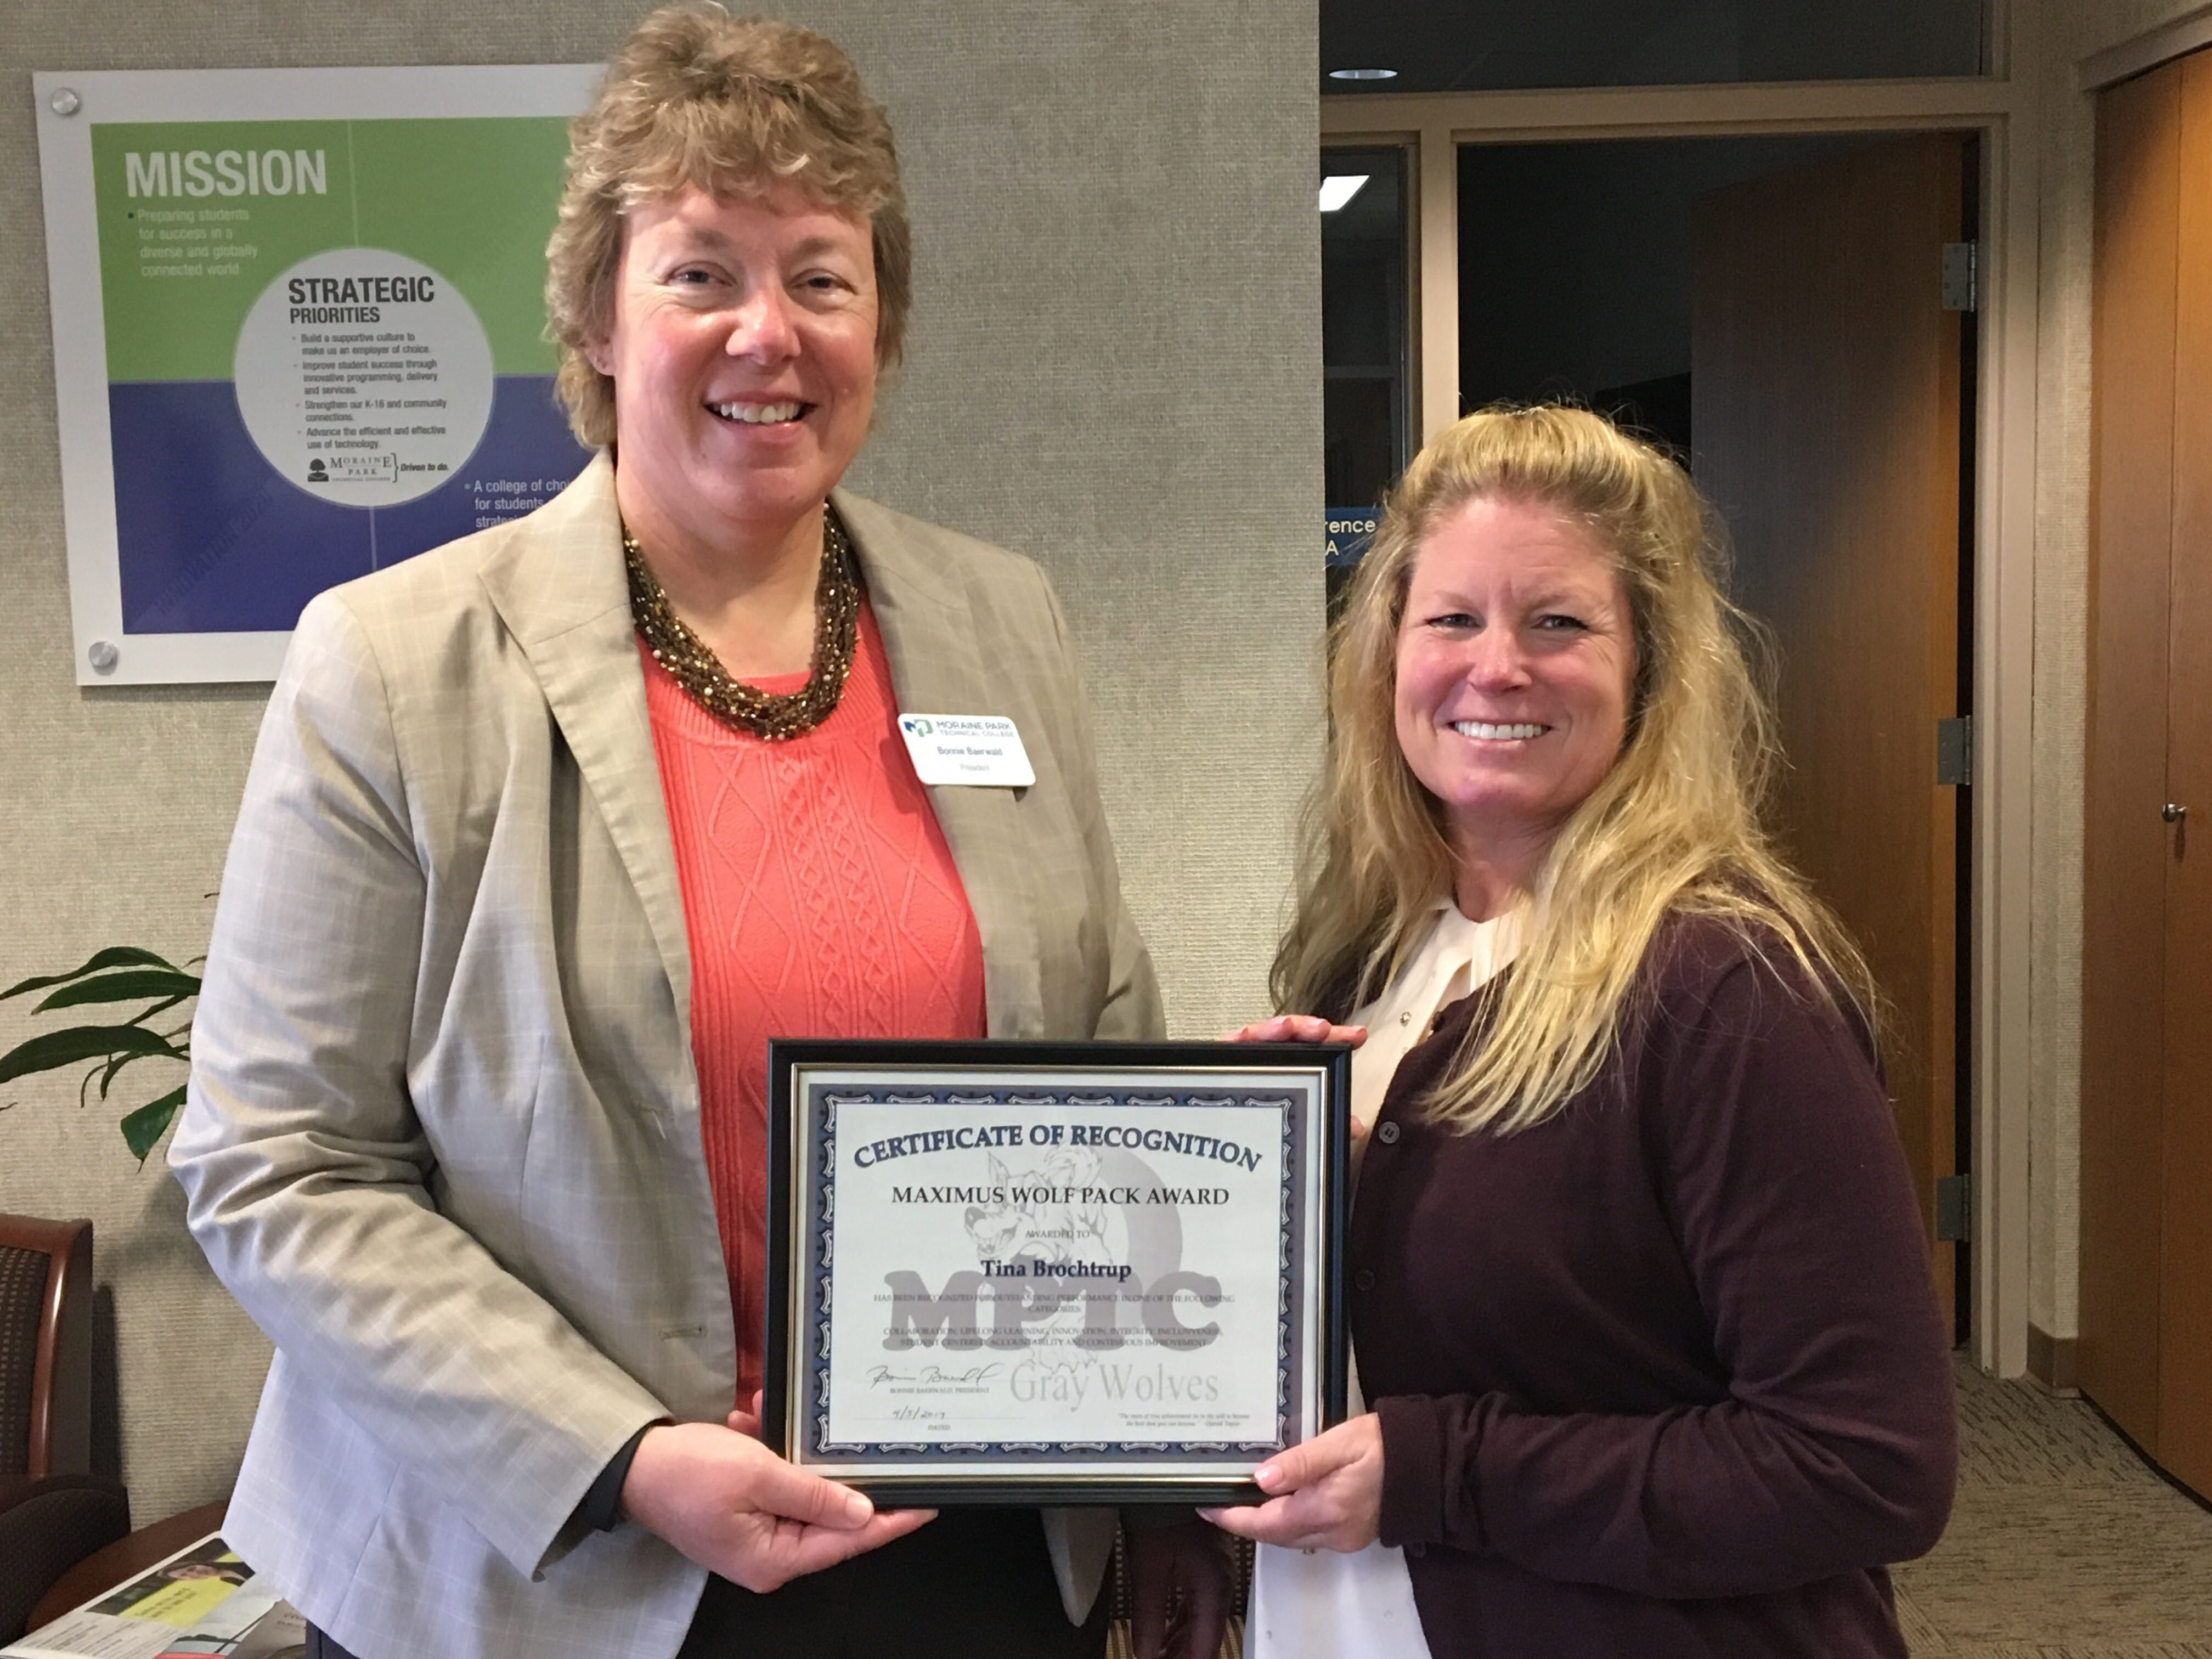 Bonnie Baerwald hands Maximus Award plaque to winner Tina Brochtrup